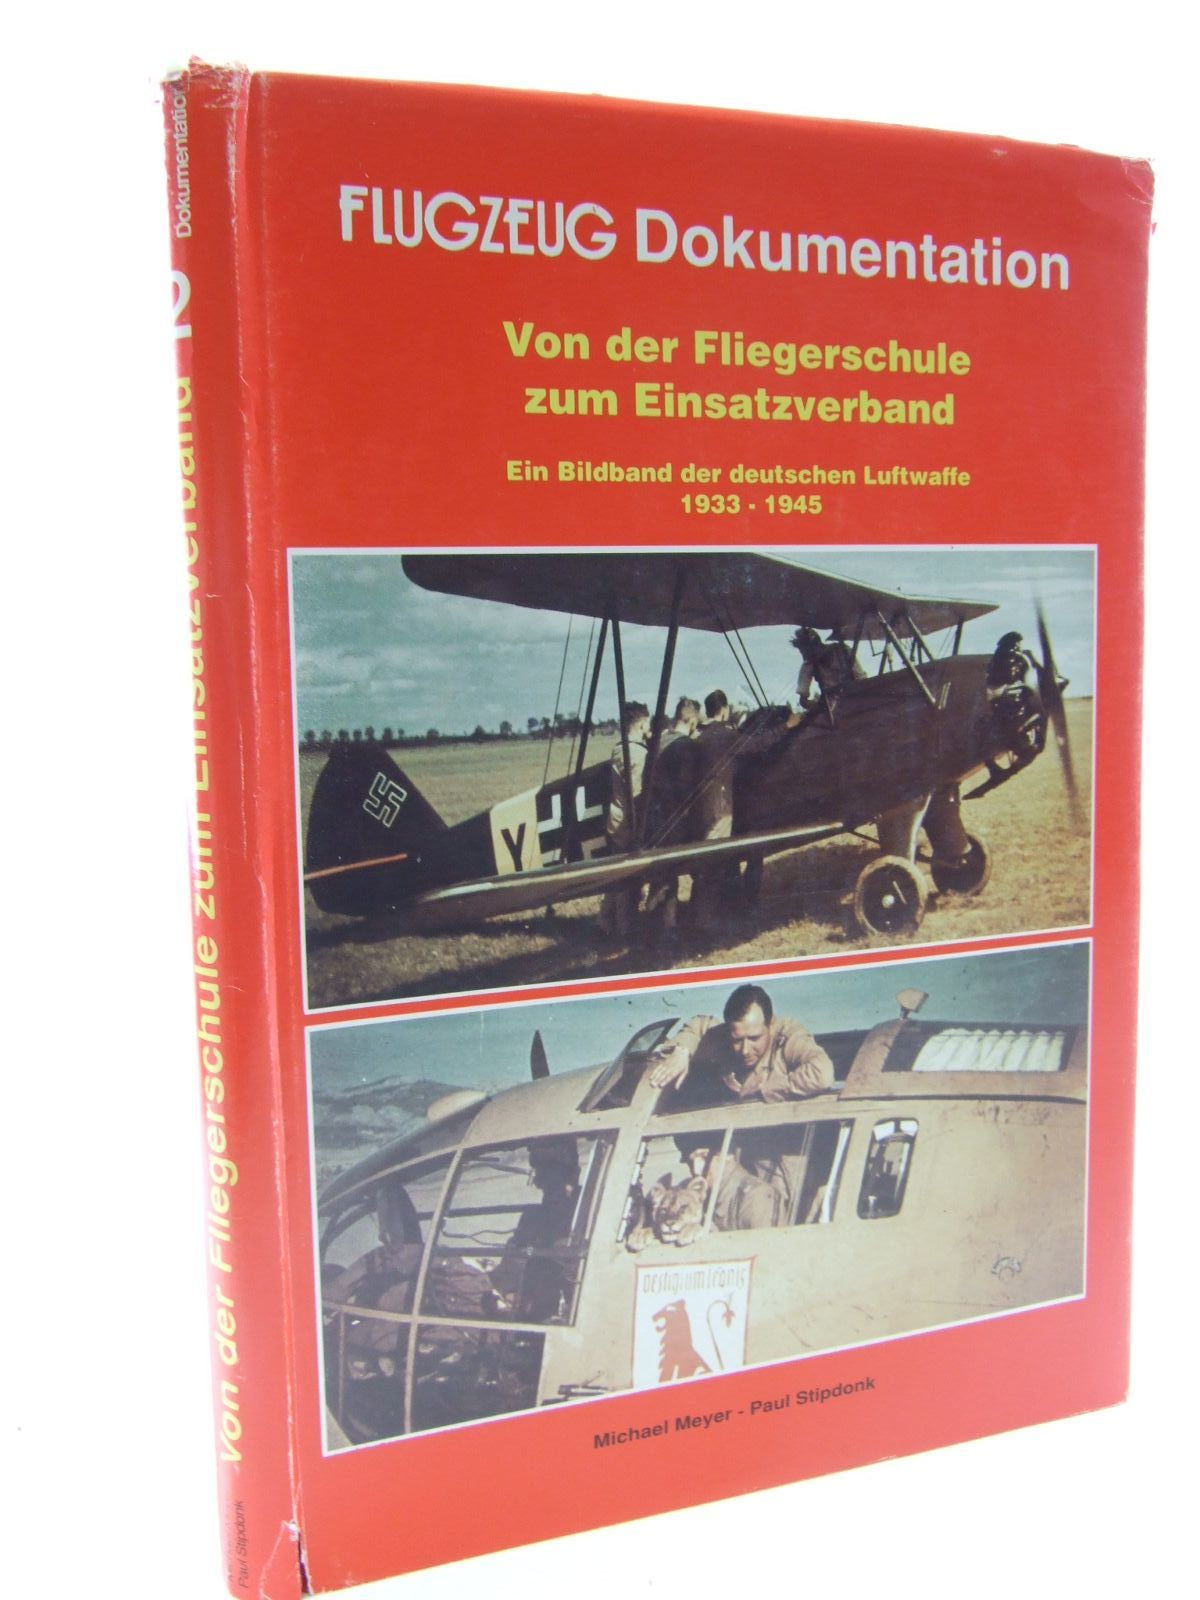 Photo of FROM SCHOOL TO STATION A PICTORIAL STUDY OF THE GERMAN LUFTWAFFE 1933-1945. written by Meyer, Michael Stipdonk, Paul published by Flugzeug Publikations Gmbh (STOCK CODE: 1706383)  for sale by Stella & Rose's Books